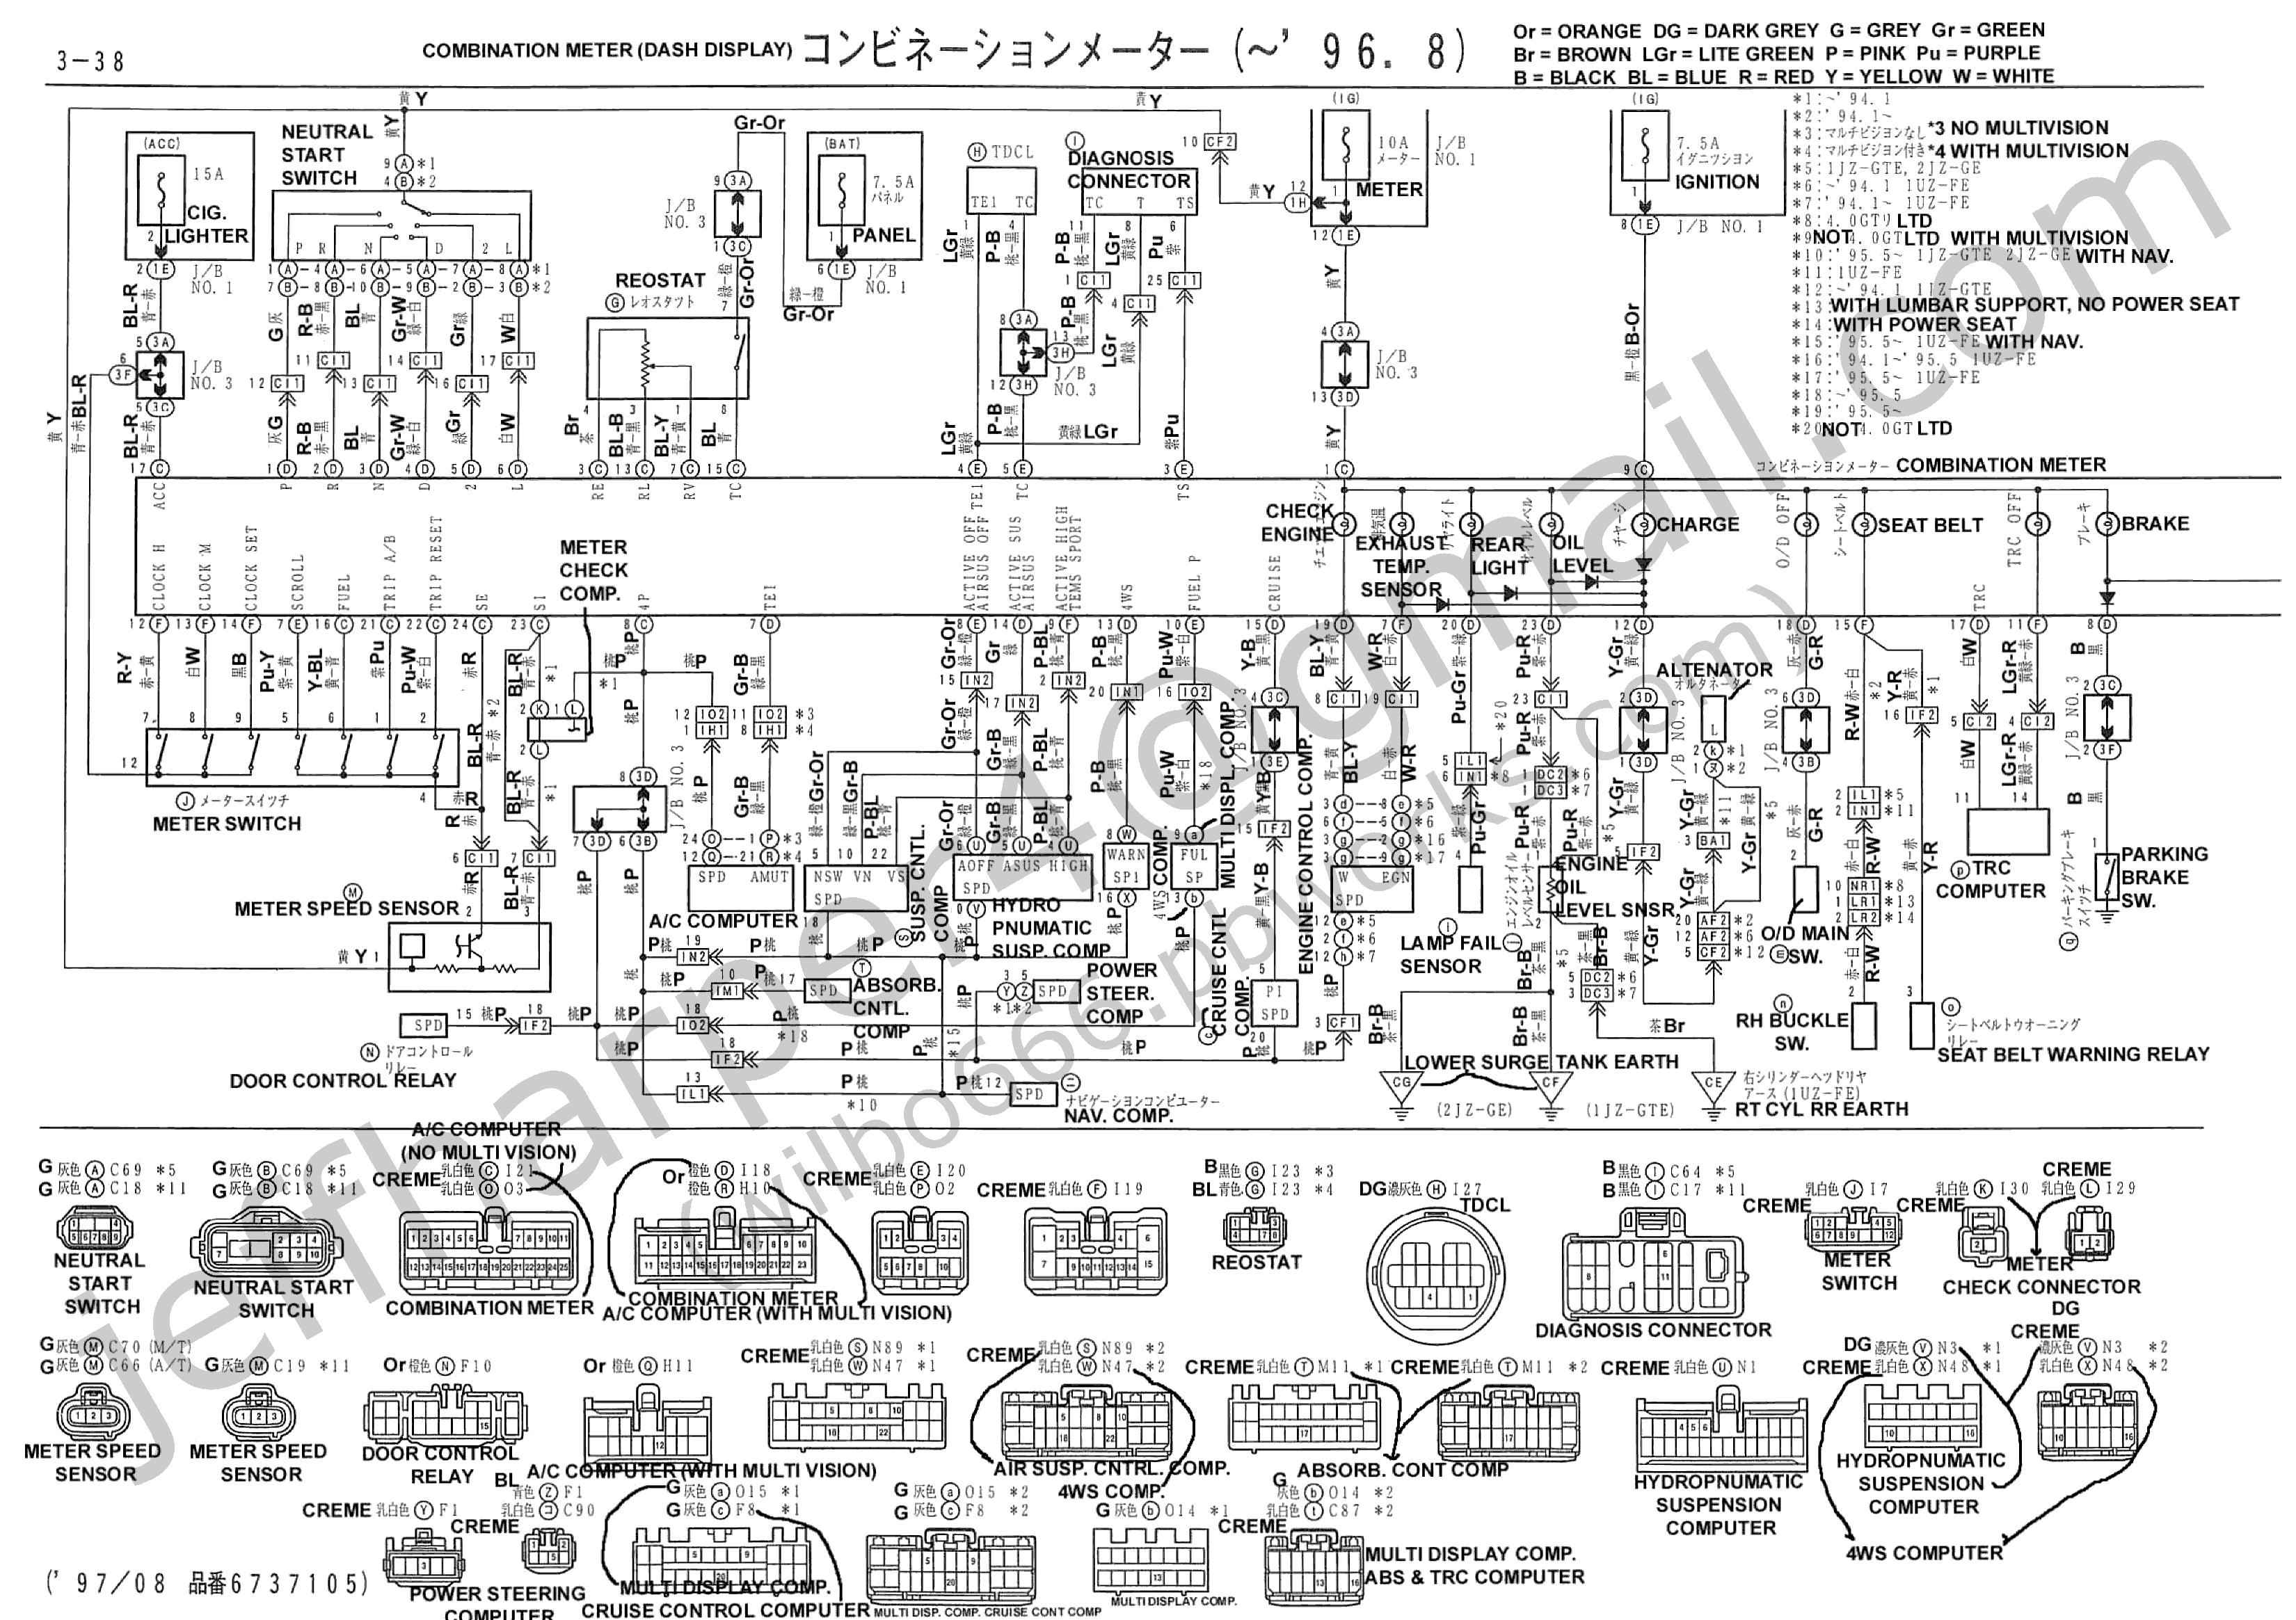 1995 Bmw 325i Wiring Diagram on 199467 aite got boost leak tester